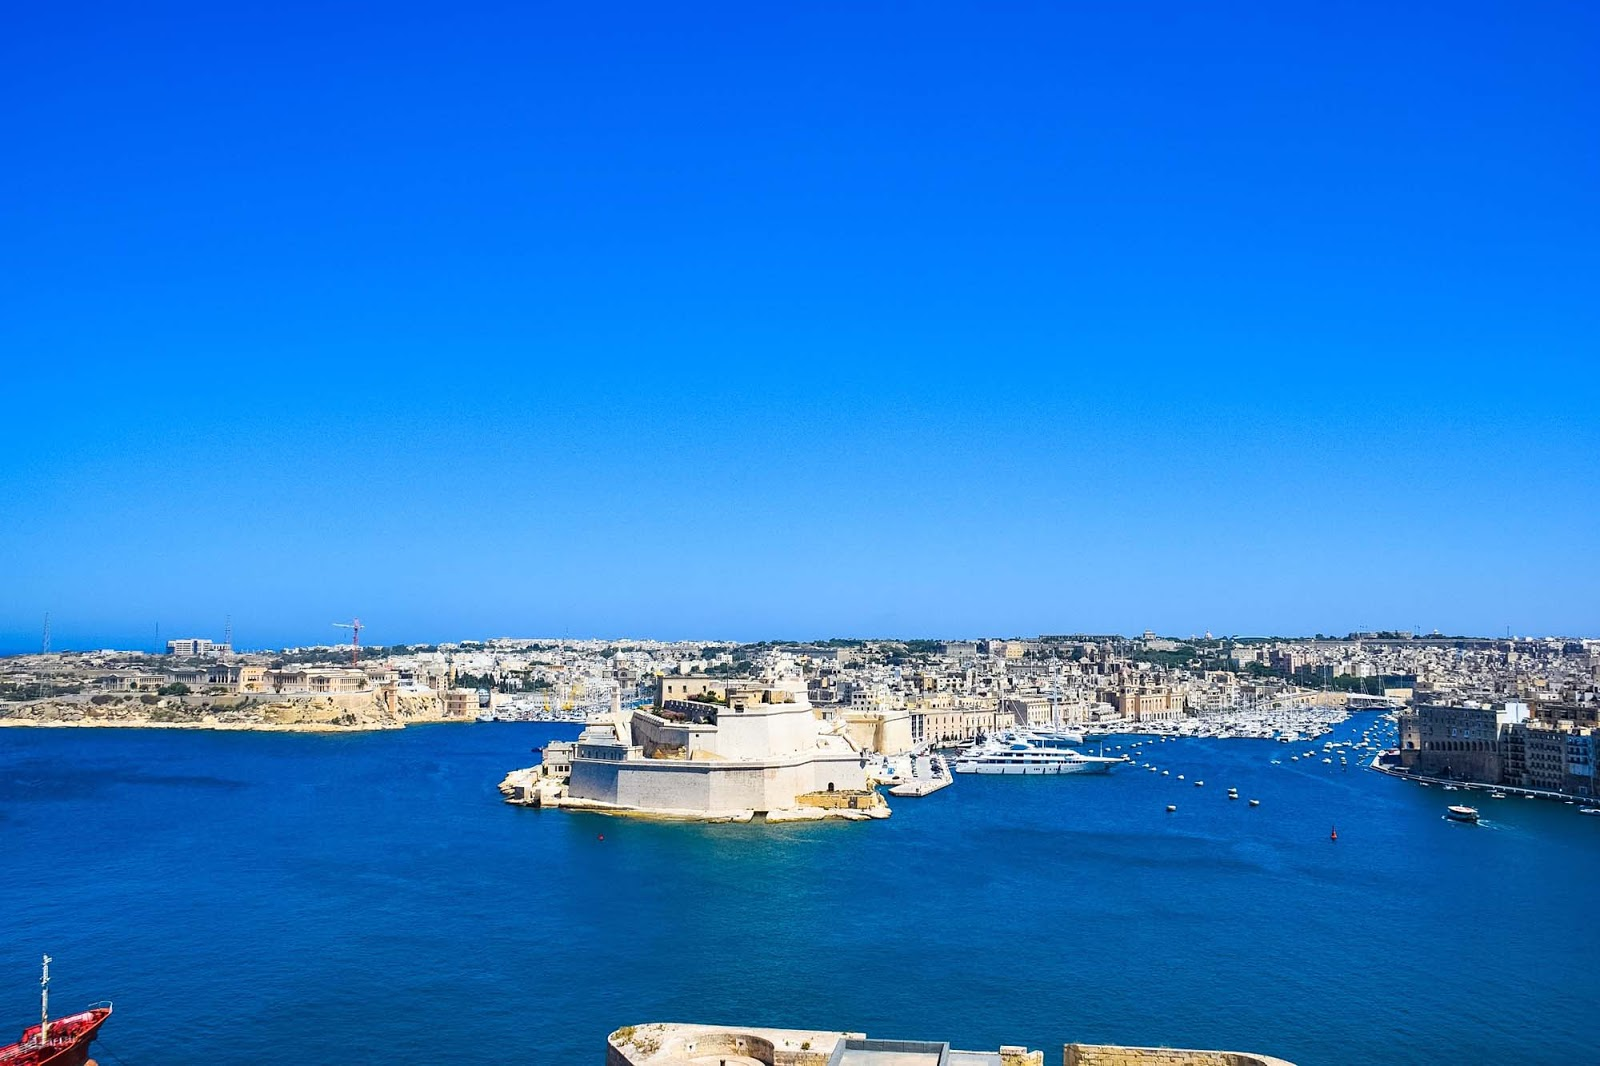 port of valletta